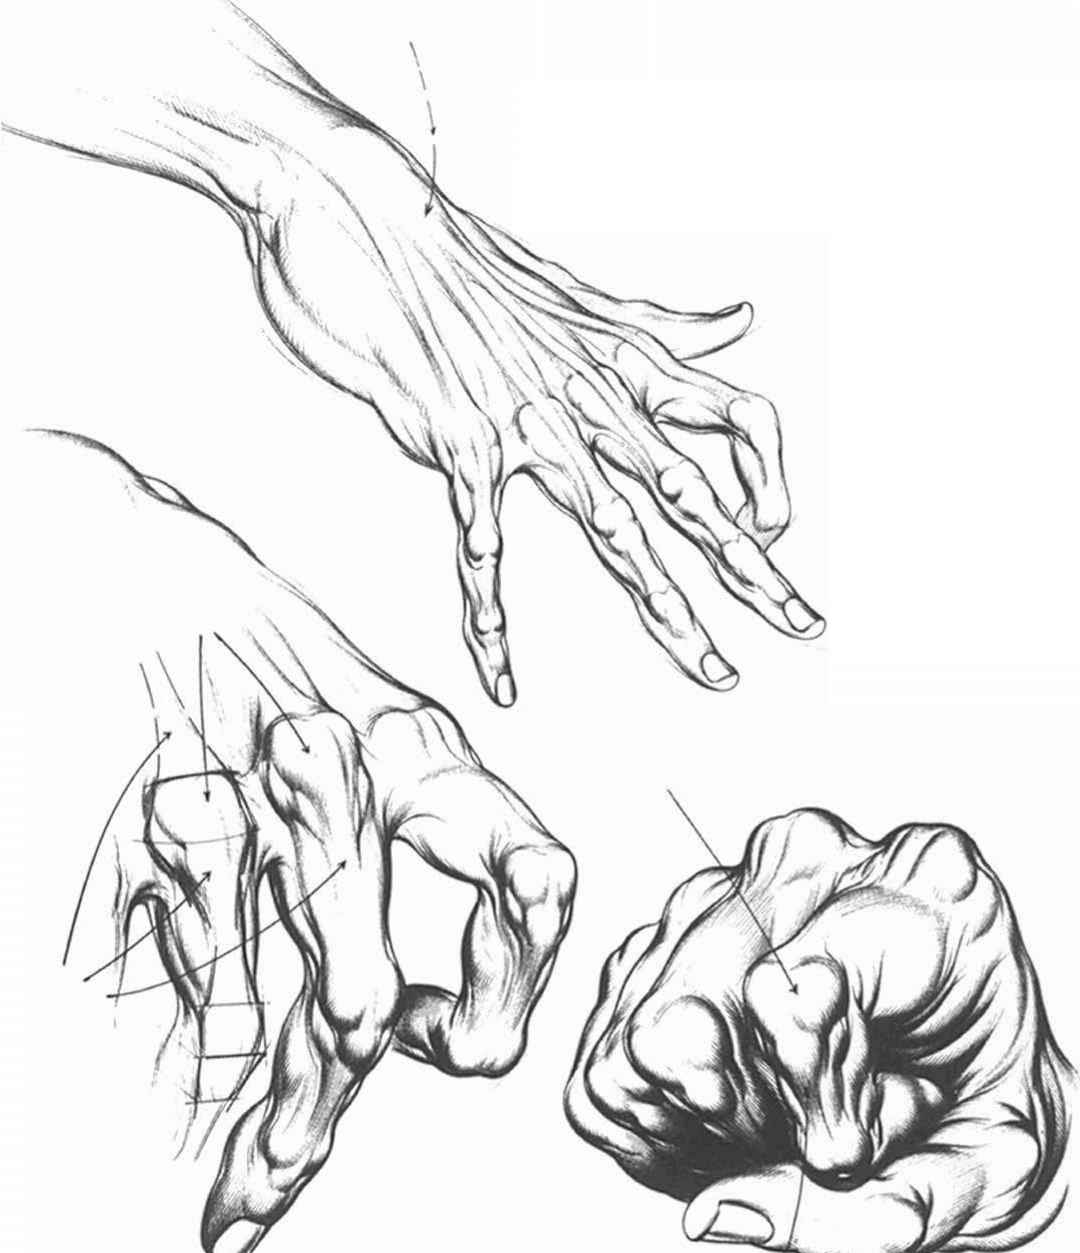 Skeletal Hand Drawing at GetDrawings.com | Free for personal use ...